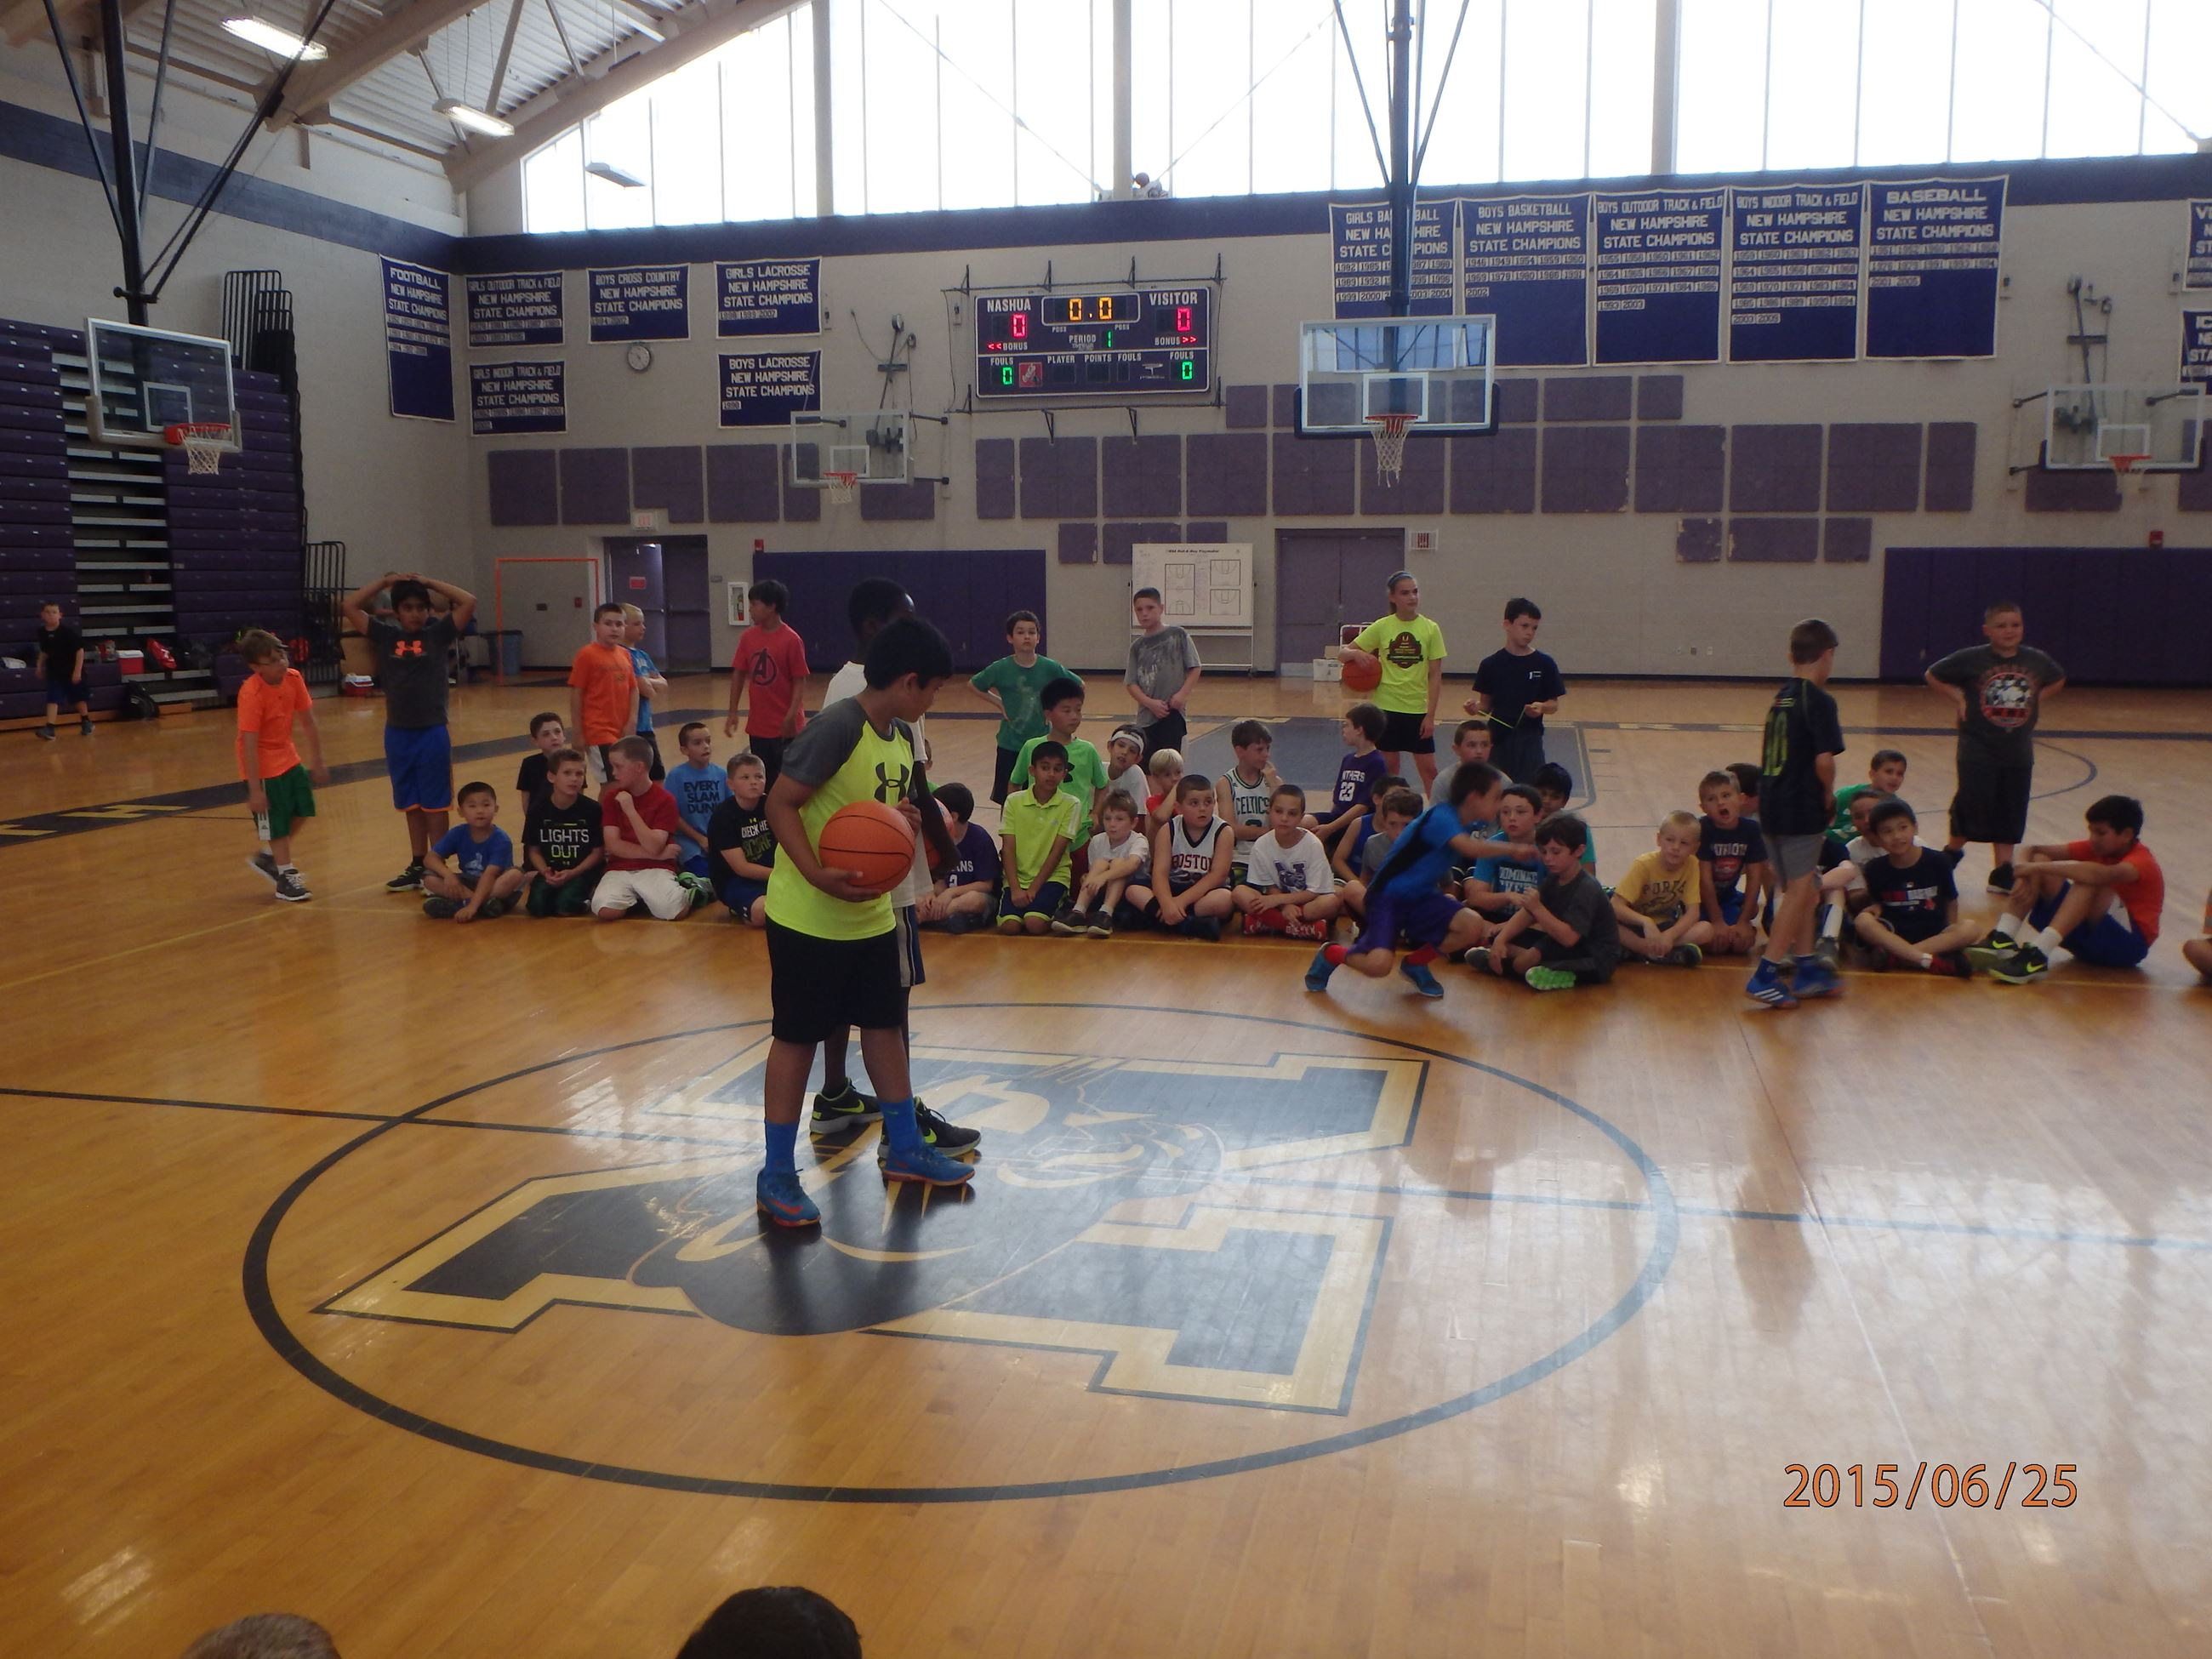 Boys gathered in a gym for basketball camp.